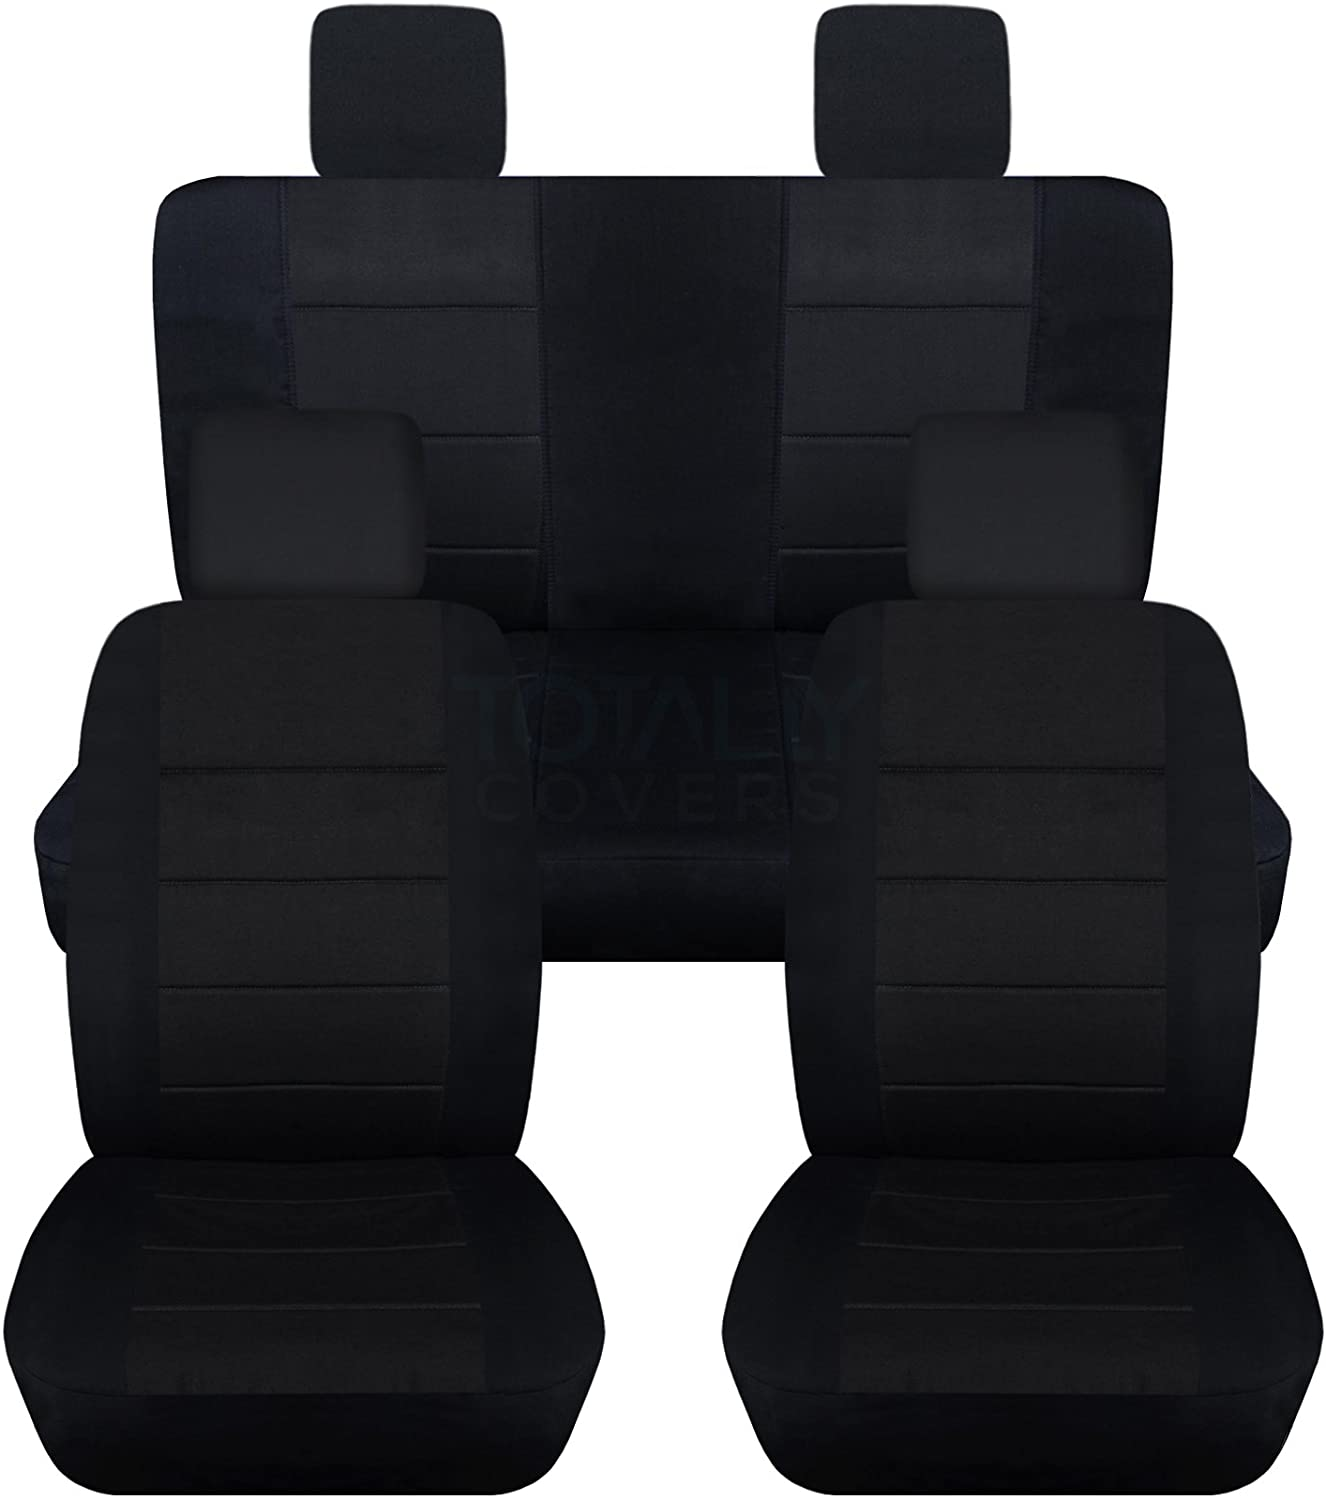 Totally Covers Compatible with 2007-2010 Jeep Wrangler JK Seat Covers: Black - Full Set: Front & Rear (23 Colors) 2-Door/4-Door Complete Back Solid/Split Bench